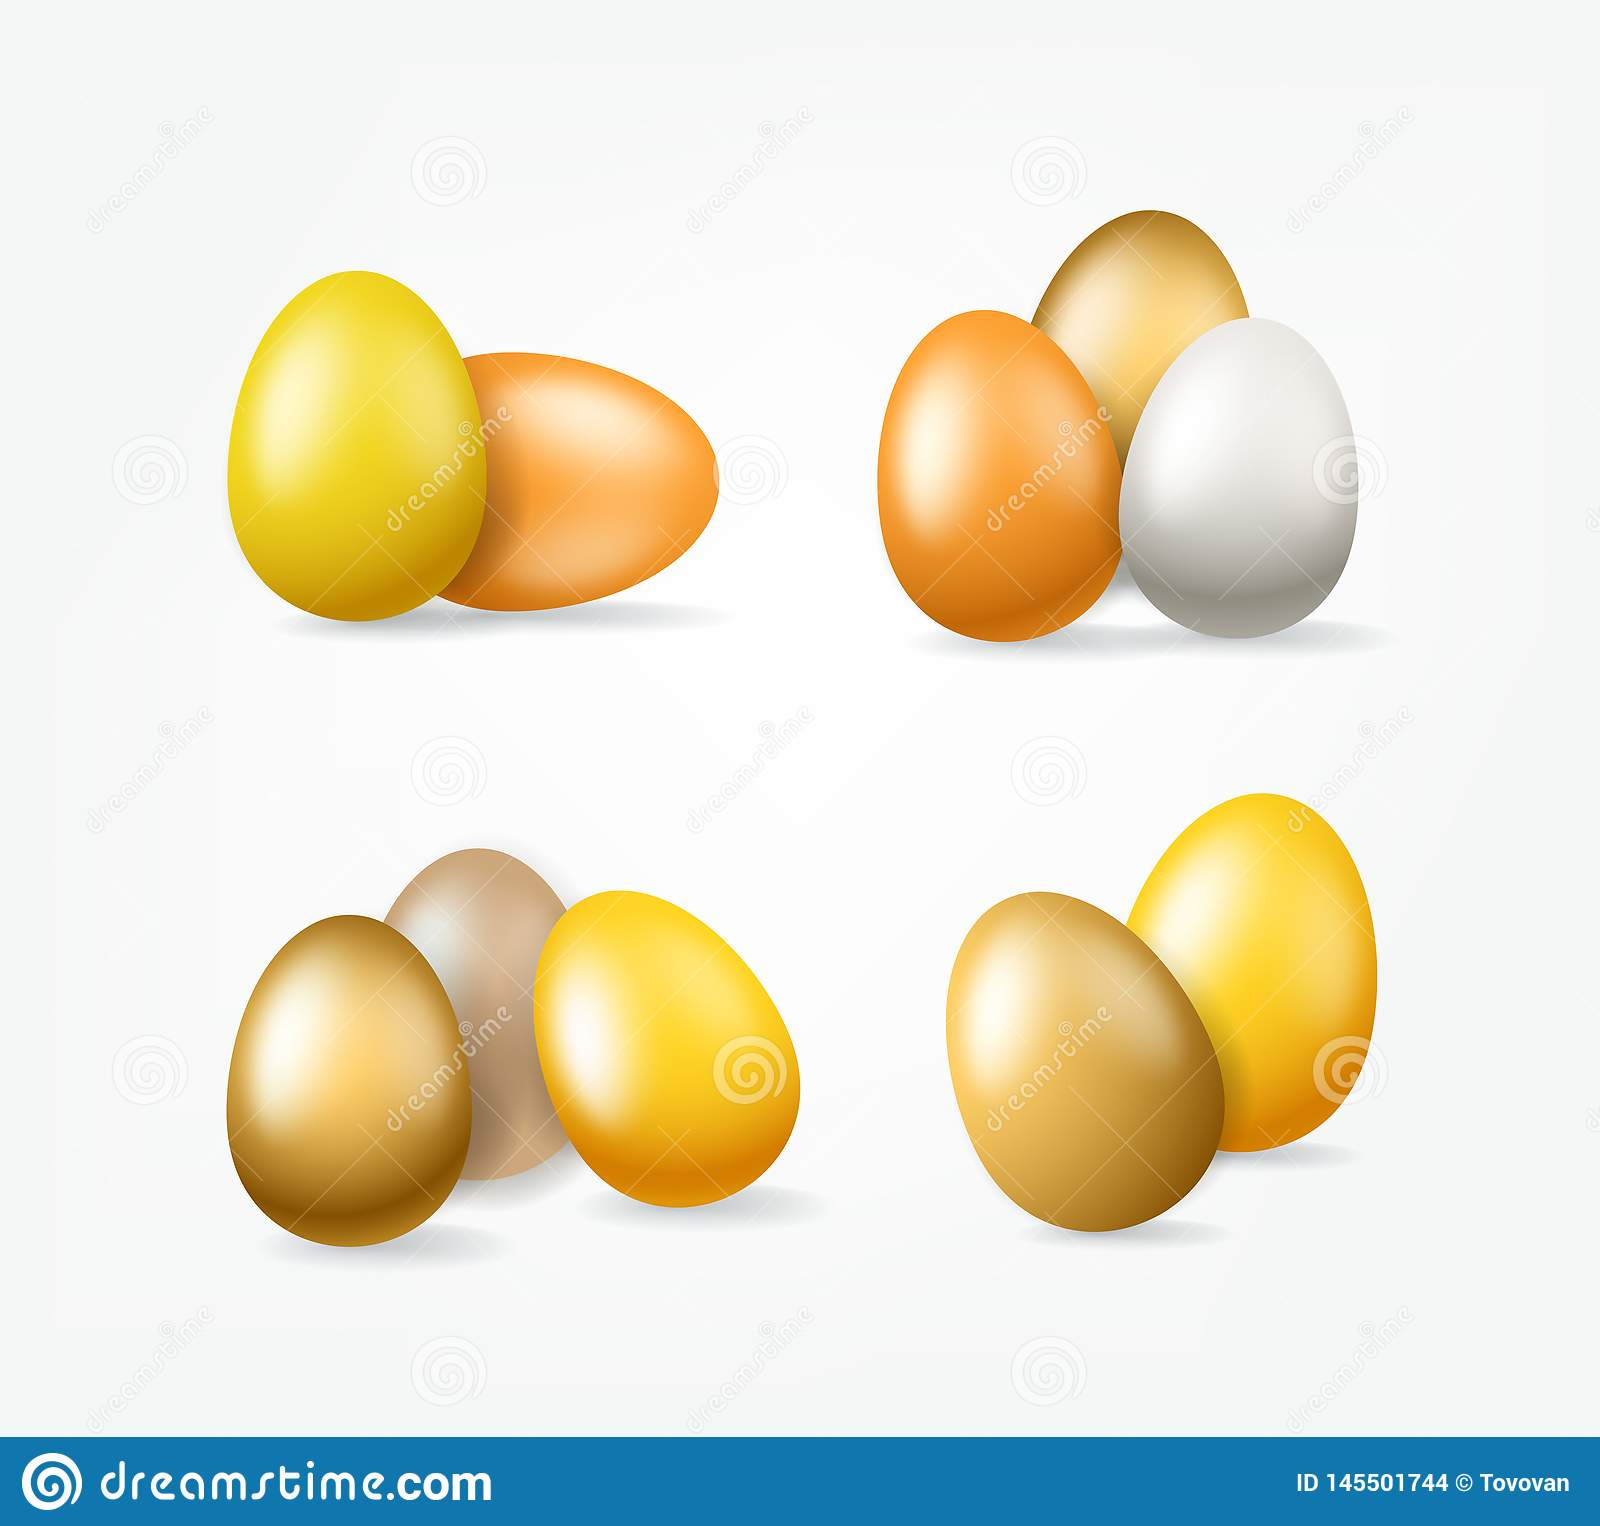 Easter Golden Eggs Clipart Isolated On White Background Stock Vector Illustration Of Beautiful Realistic 145501744 Pngtree offers egg eggs clipart png and vector images, as well as transparant background egg eggs clipart clipart images. https www dreamstime com easter golden eggs clipart isolated white background easter golden eggs clipart isolated white background vector image145501744